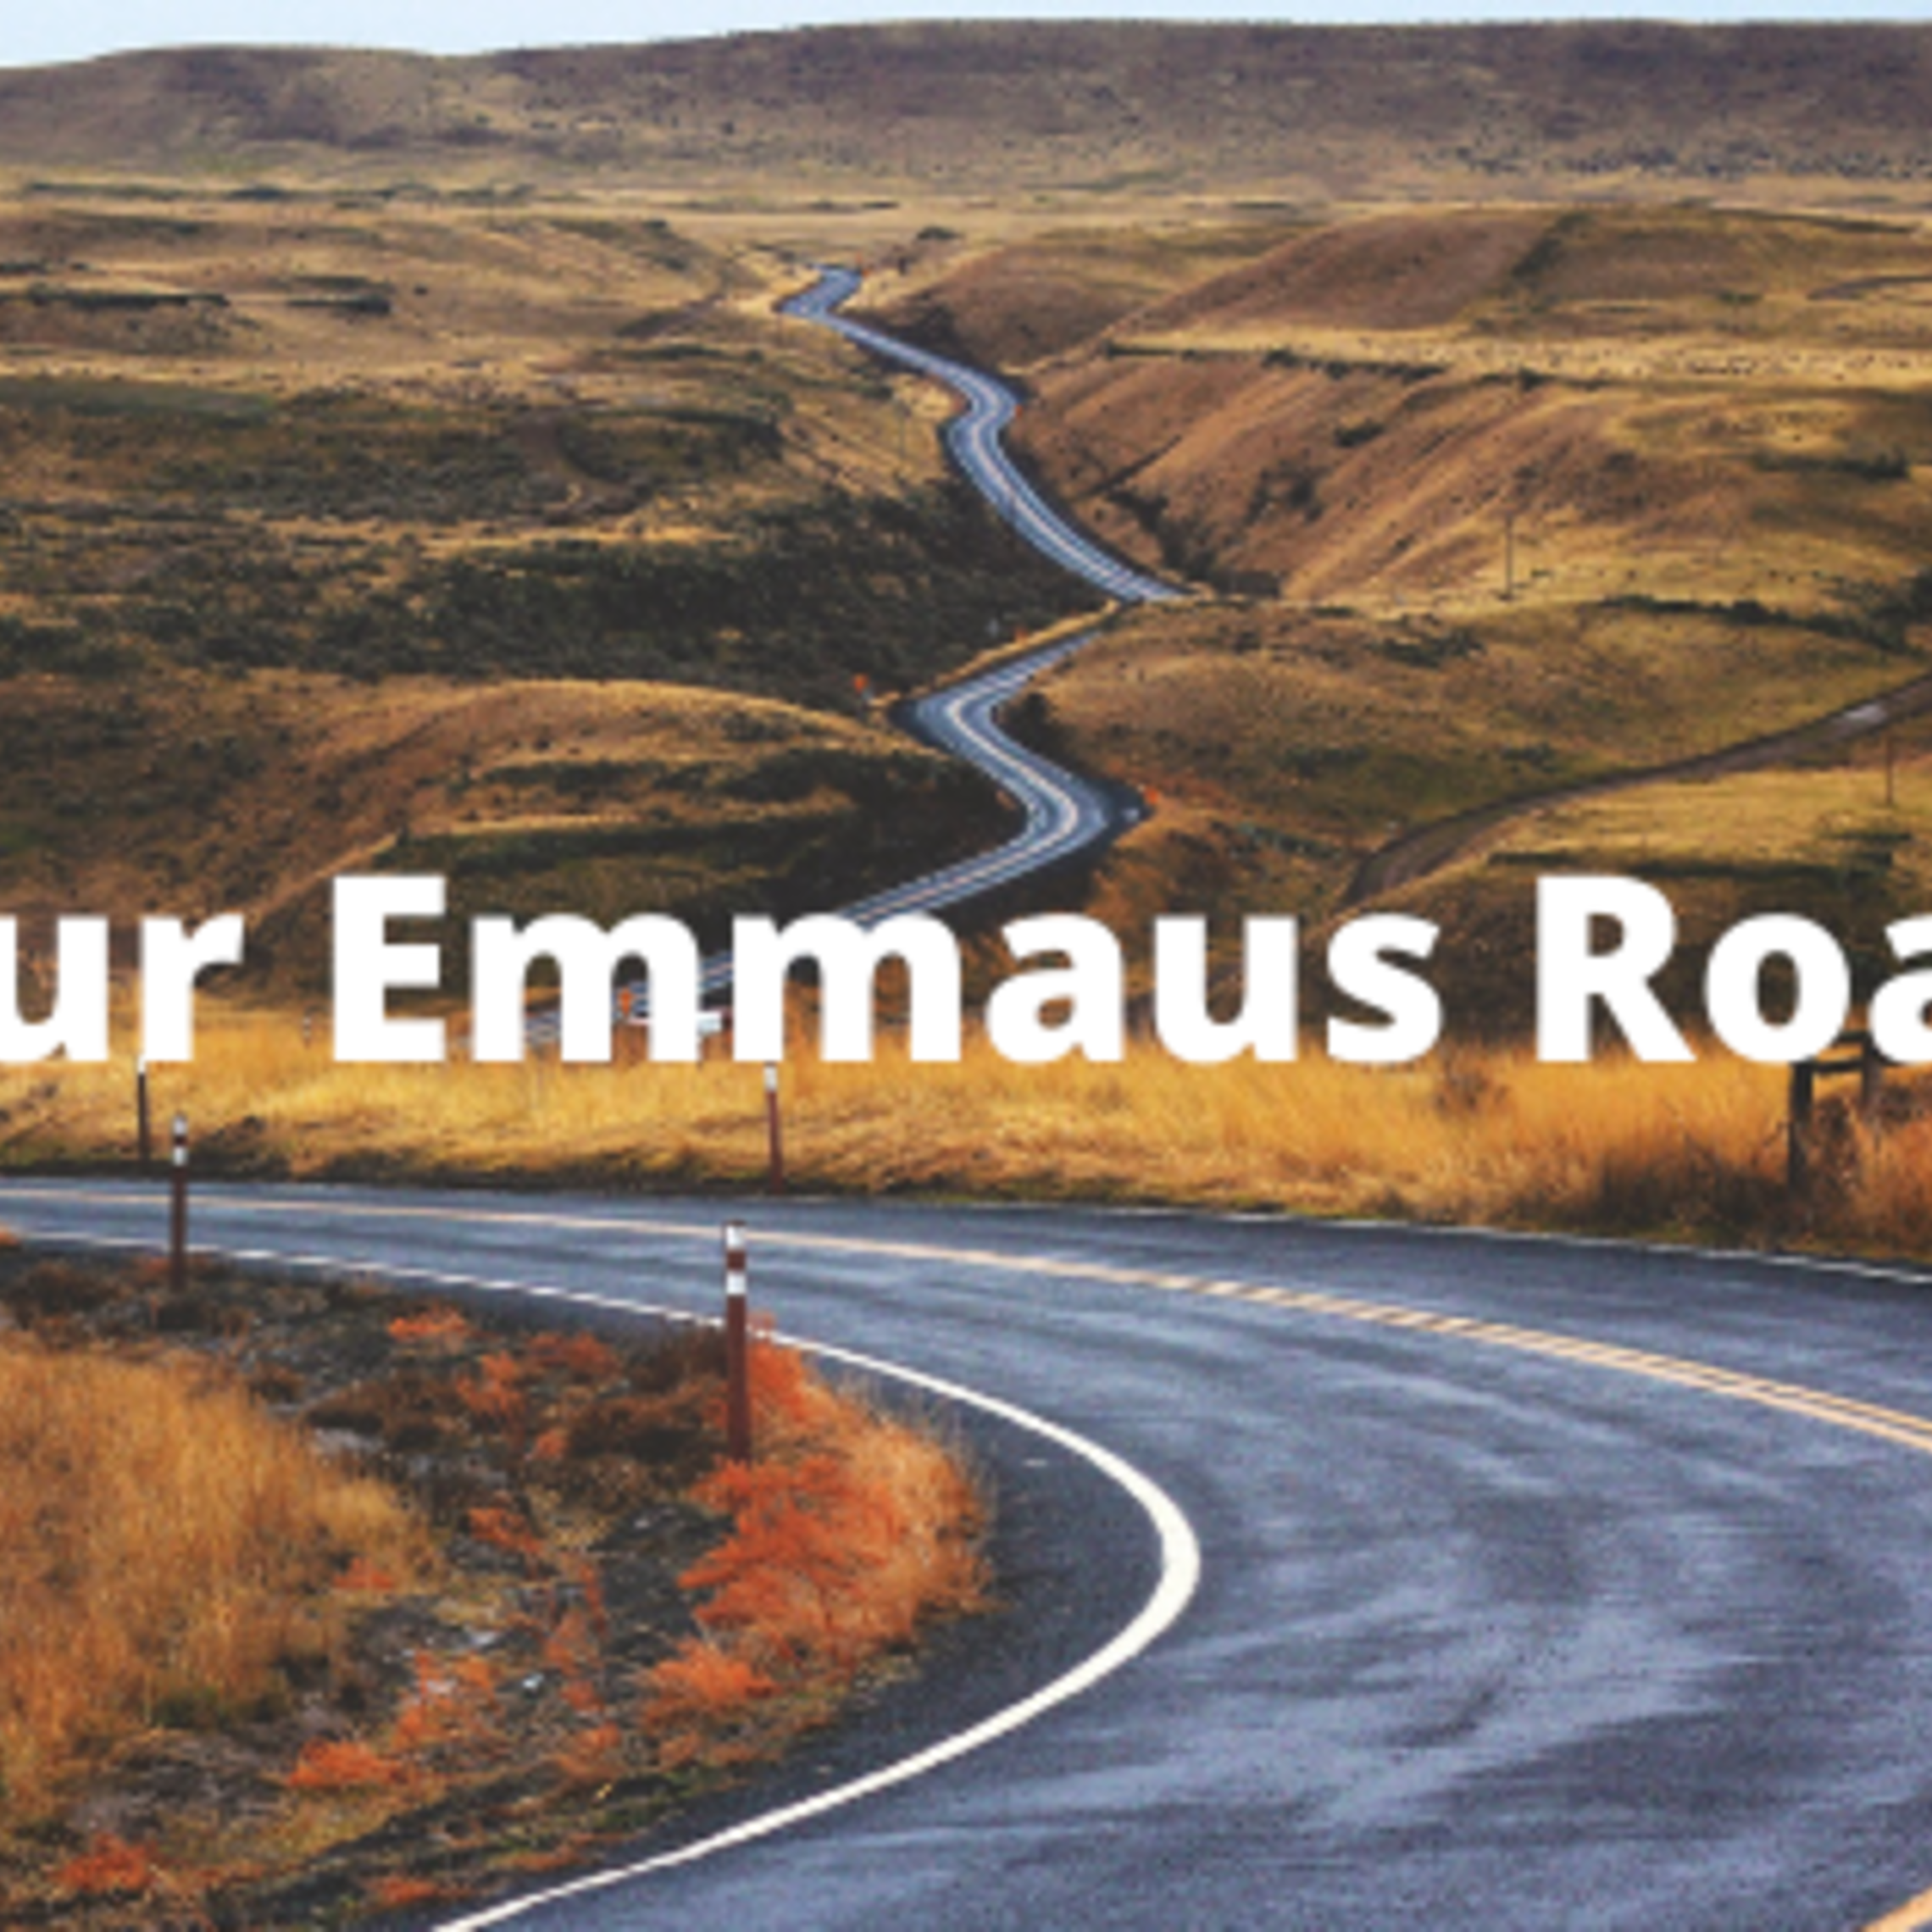 Our Emmaus Road